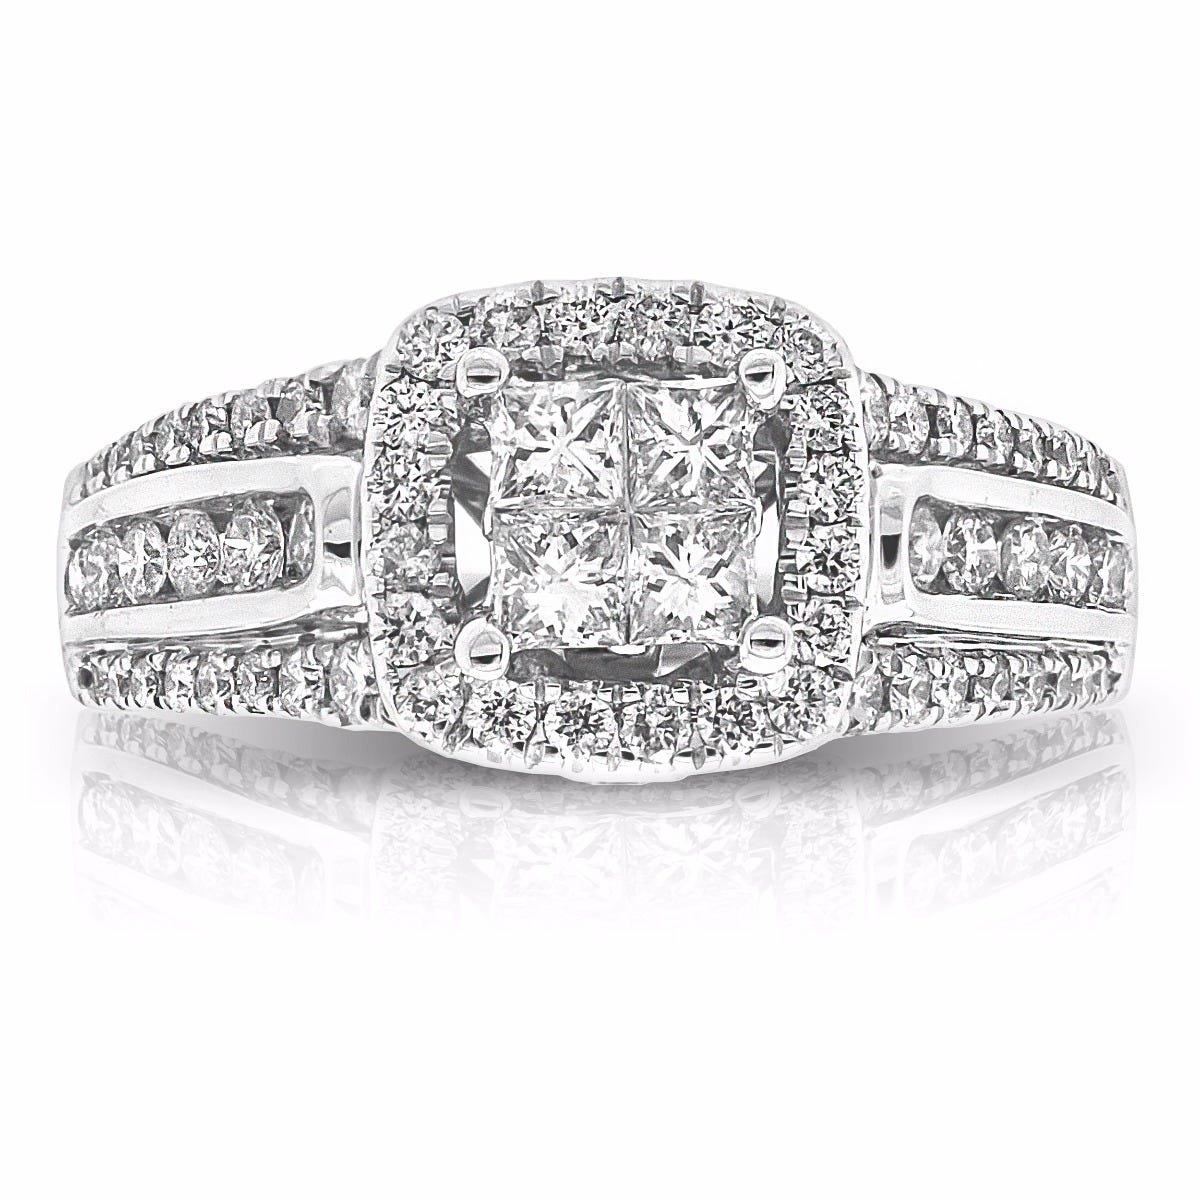 Oriana. Princess-Cut Pavé Diamond Quad Set Engagement Ring